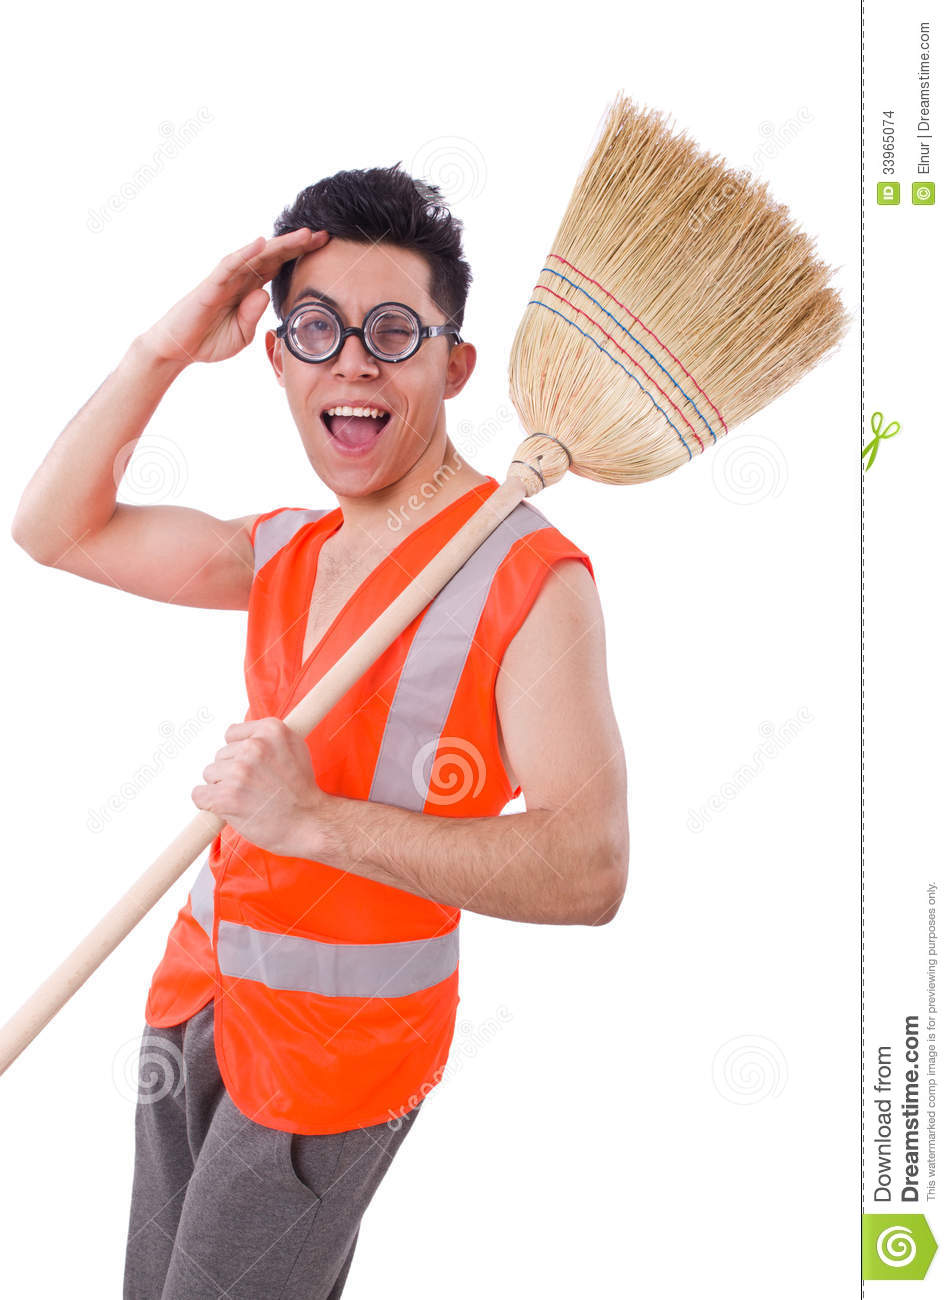 Funny Janitor Stock Images - Image: 33965074